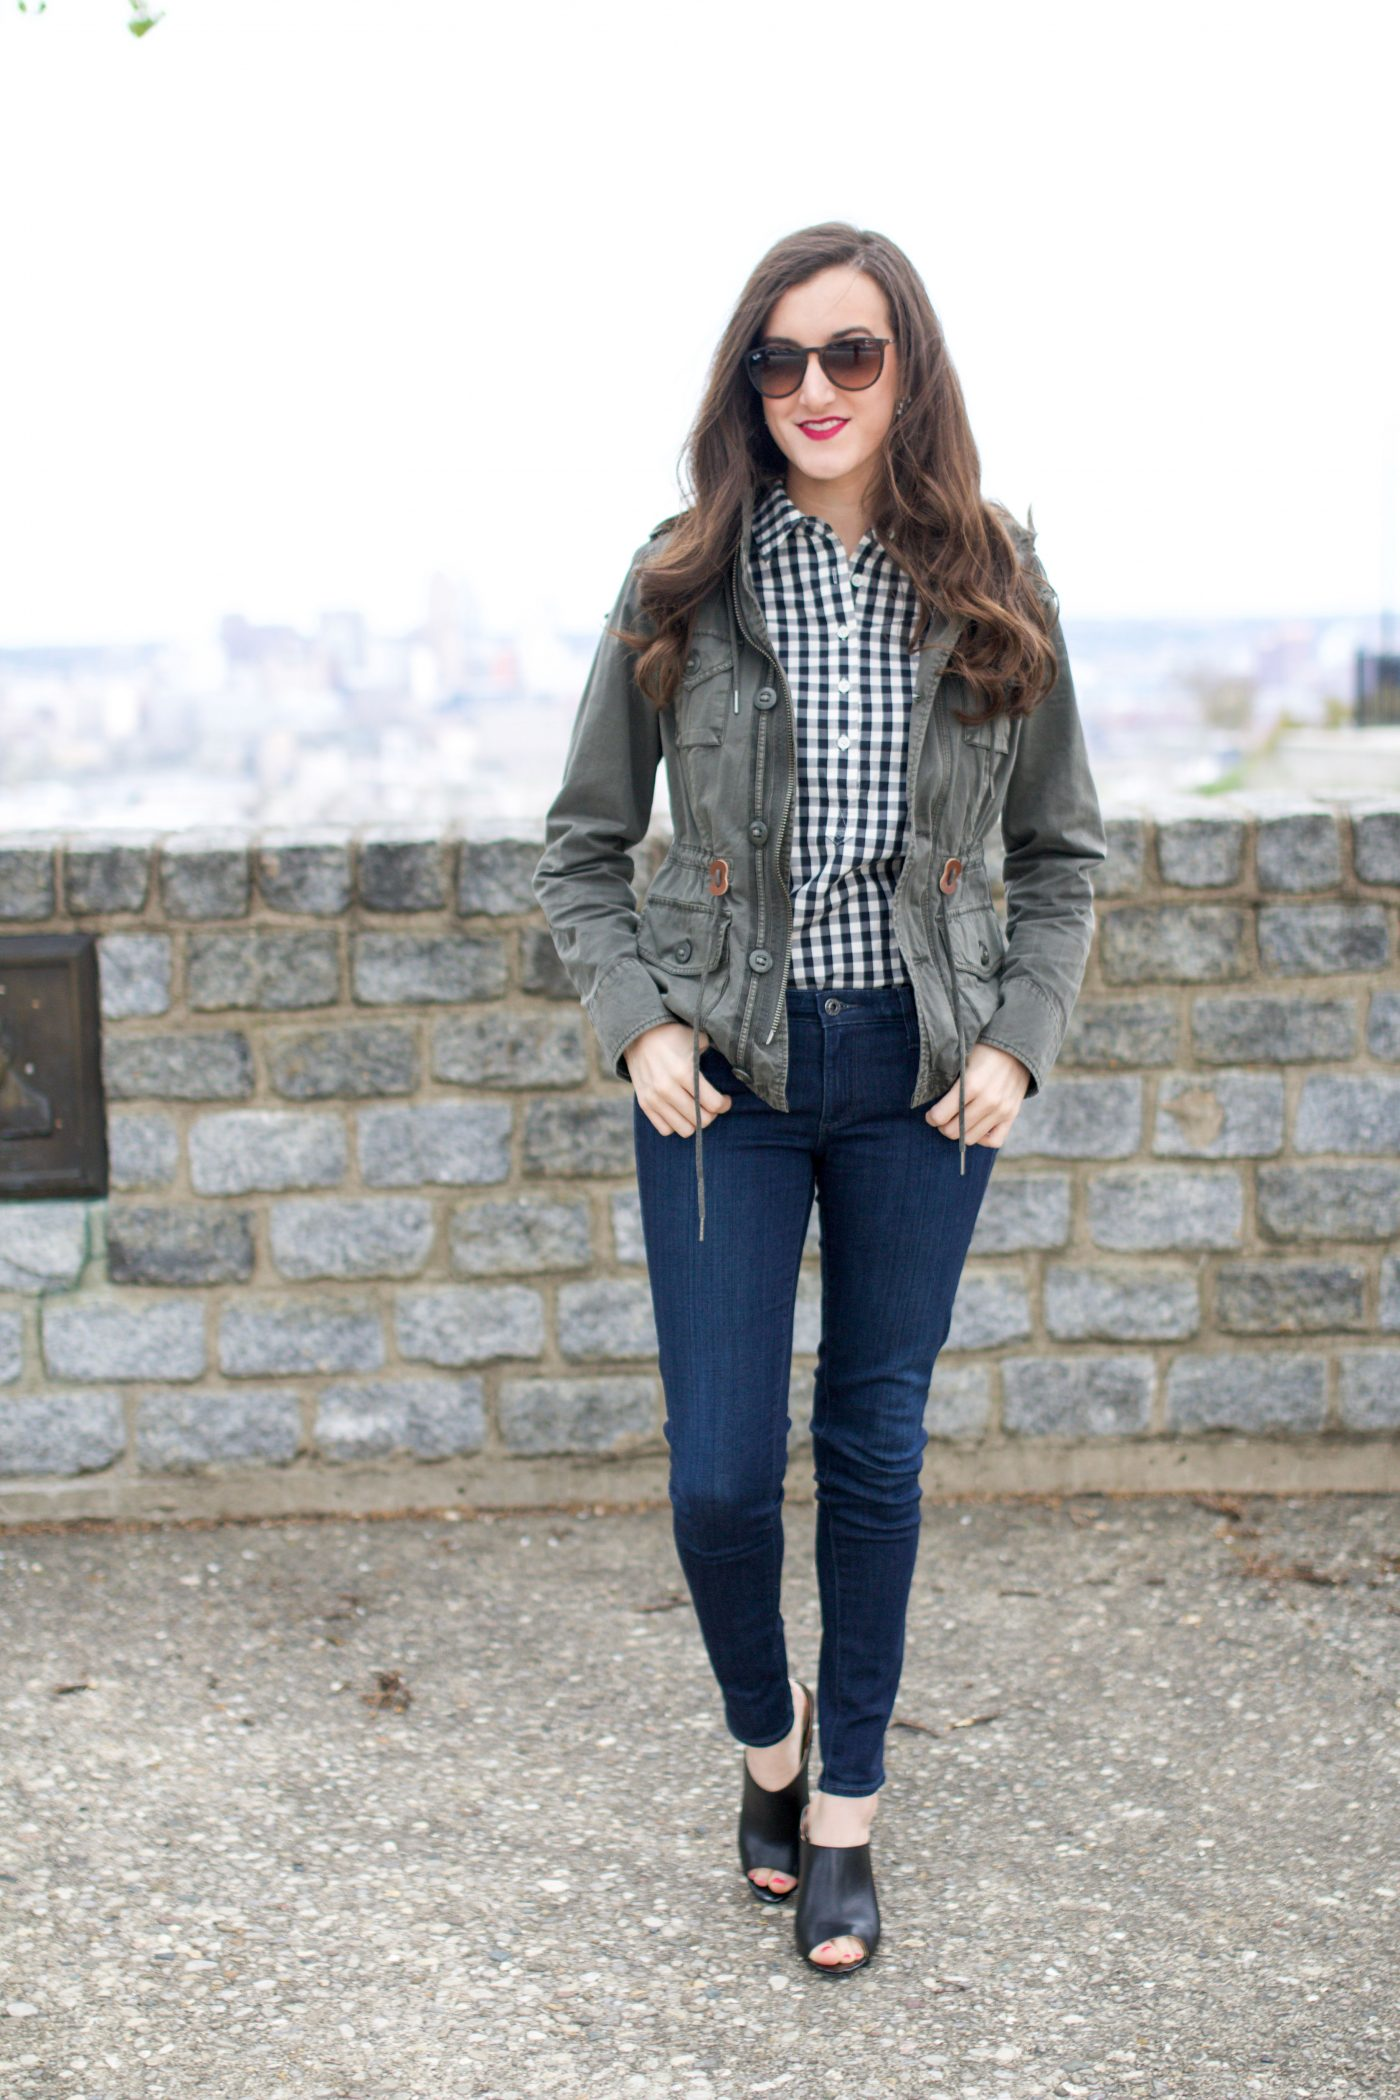 Gingham Shirt with Anorak Jacket - casual outfit ideas